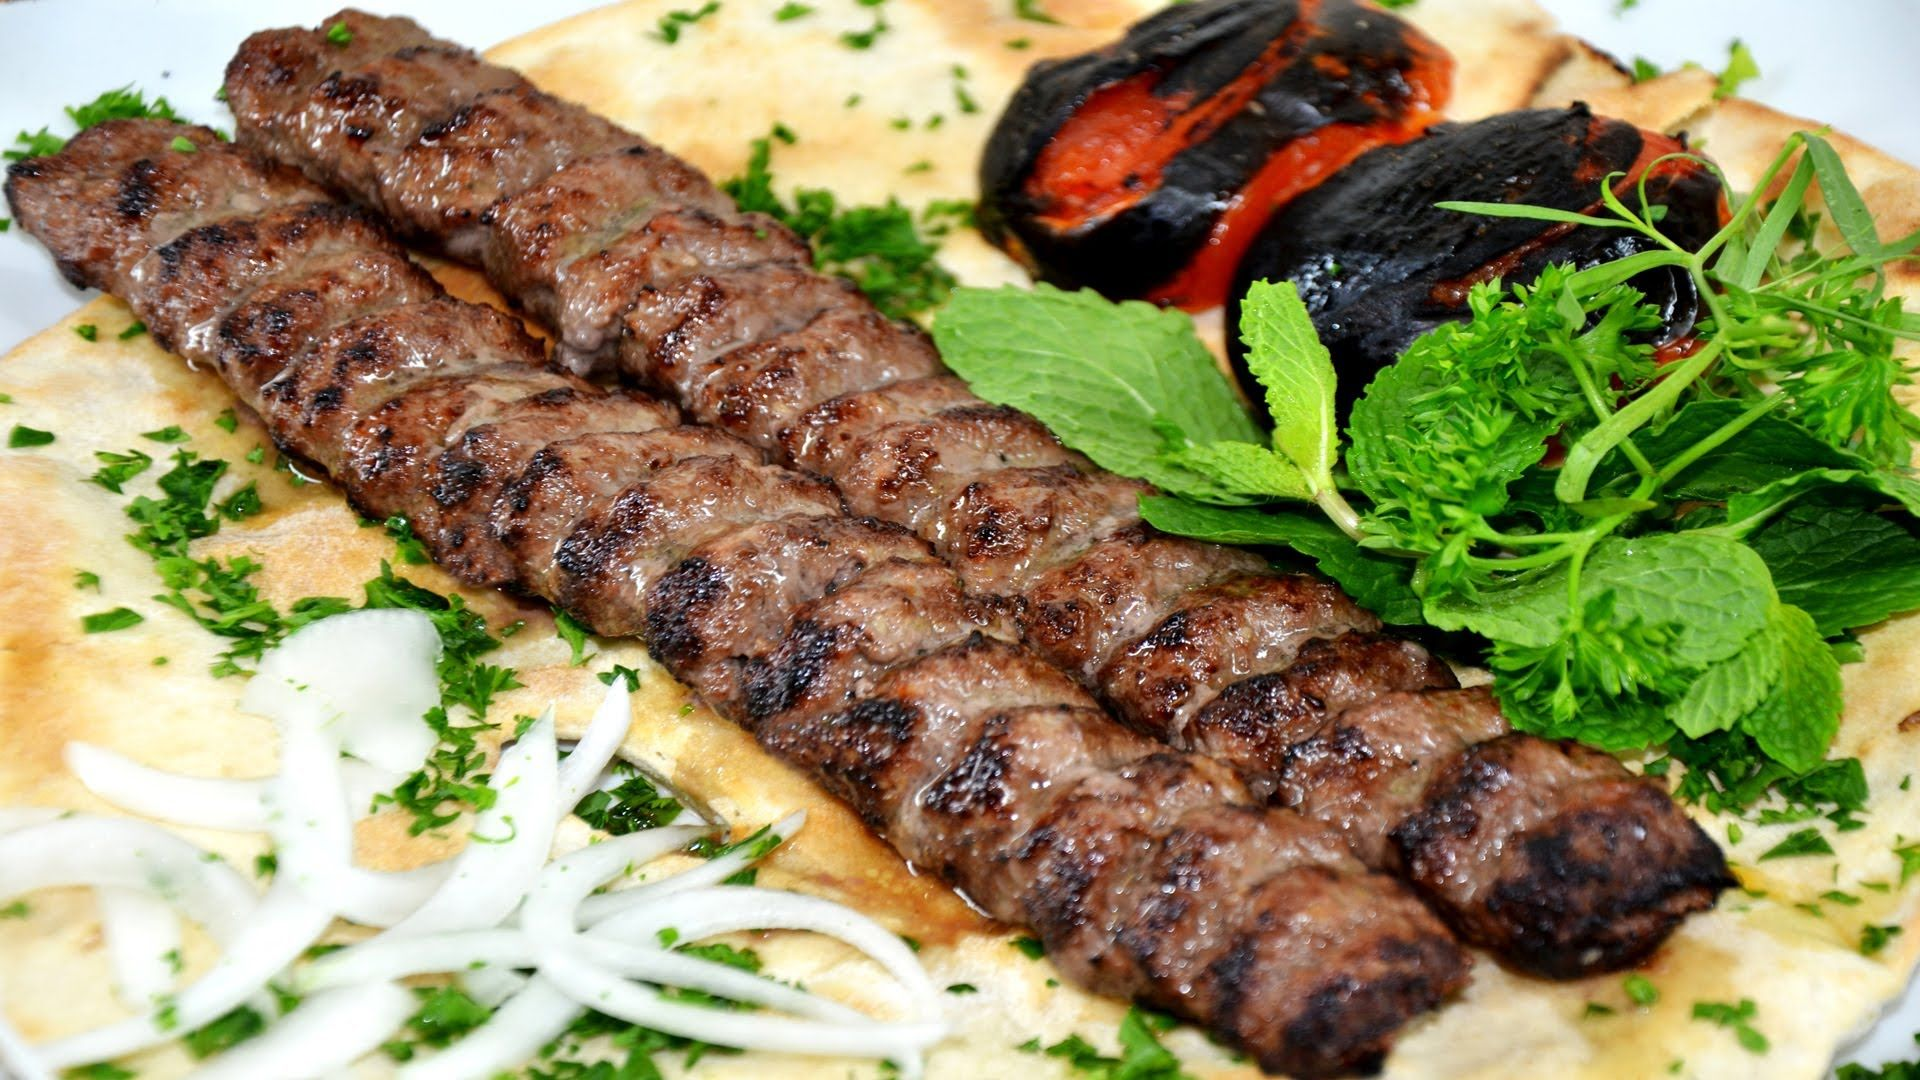 Delicious Persian Food Noosh Kitchen Koobideh Lamb Beef Chicken Persian Food Egyptian Food Persian Cuisine